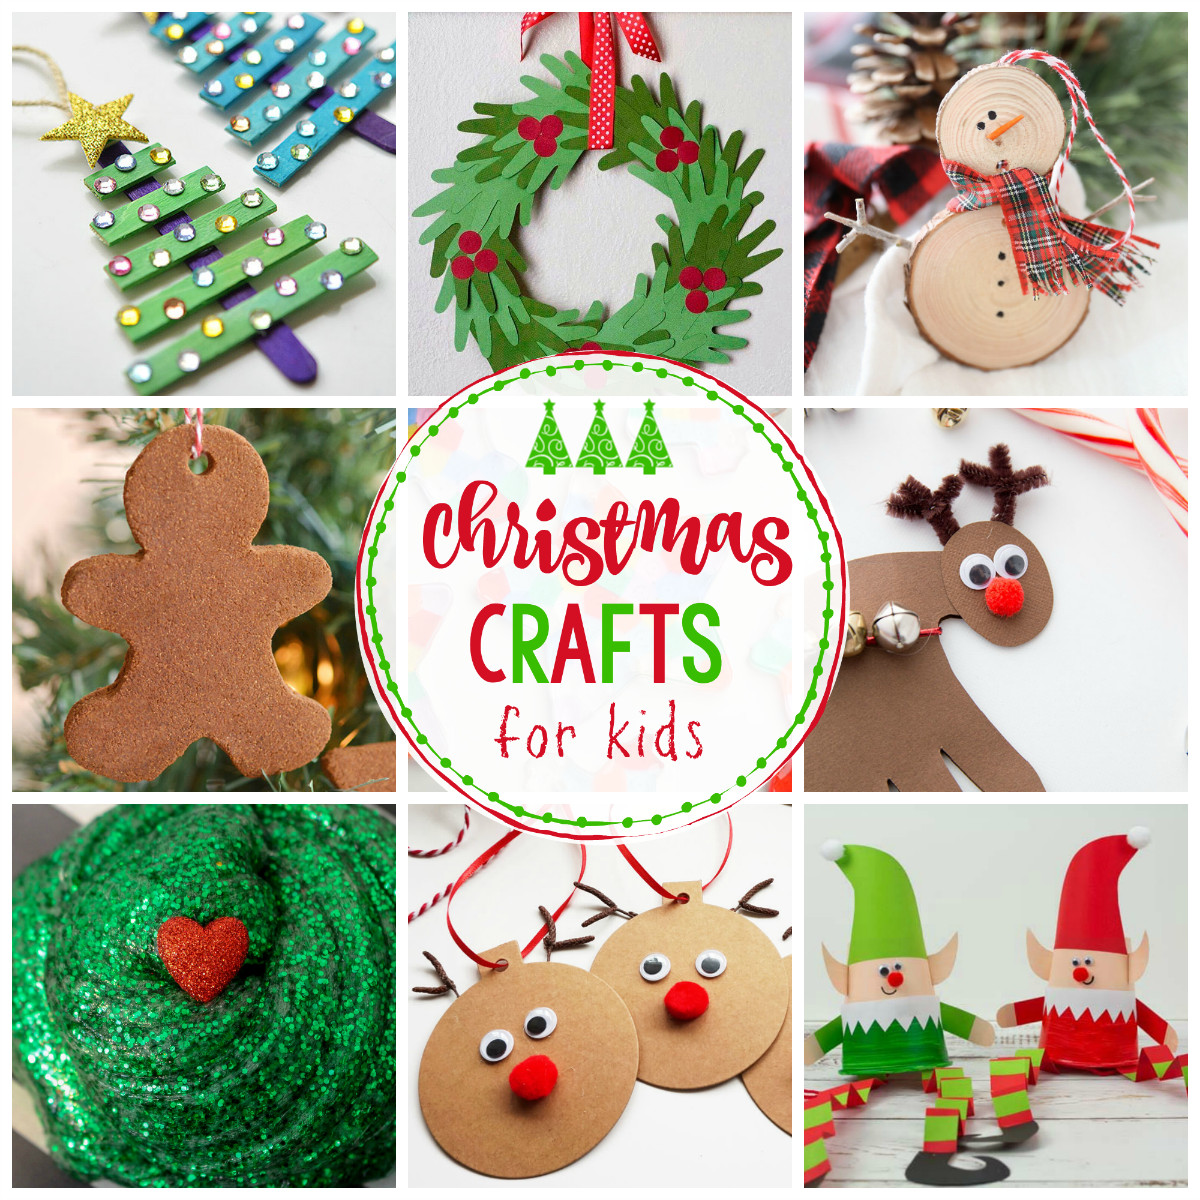 Arts And Crafts For Little Kids  25 Easy Christmas Crafts for Kids Crazy Little Projects